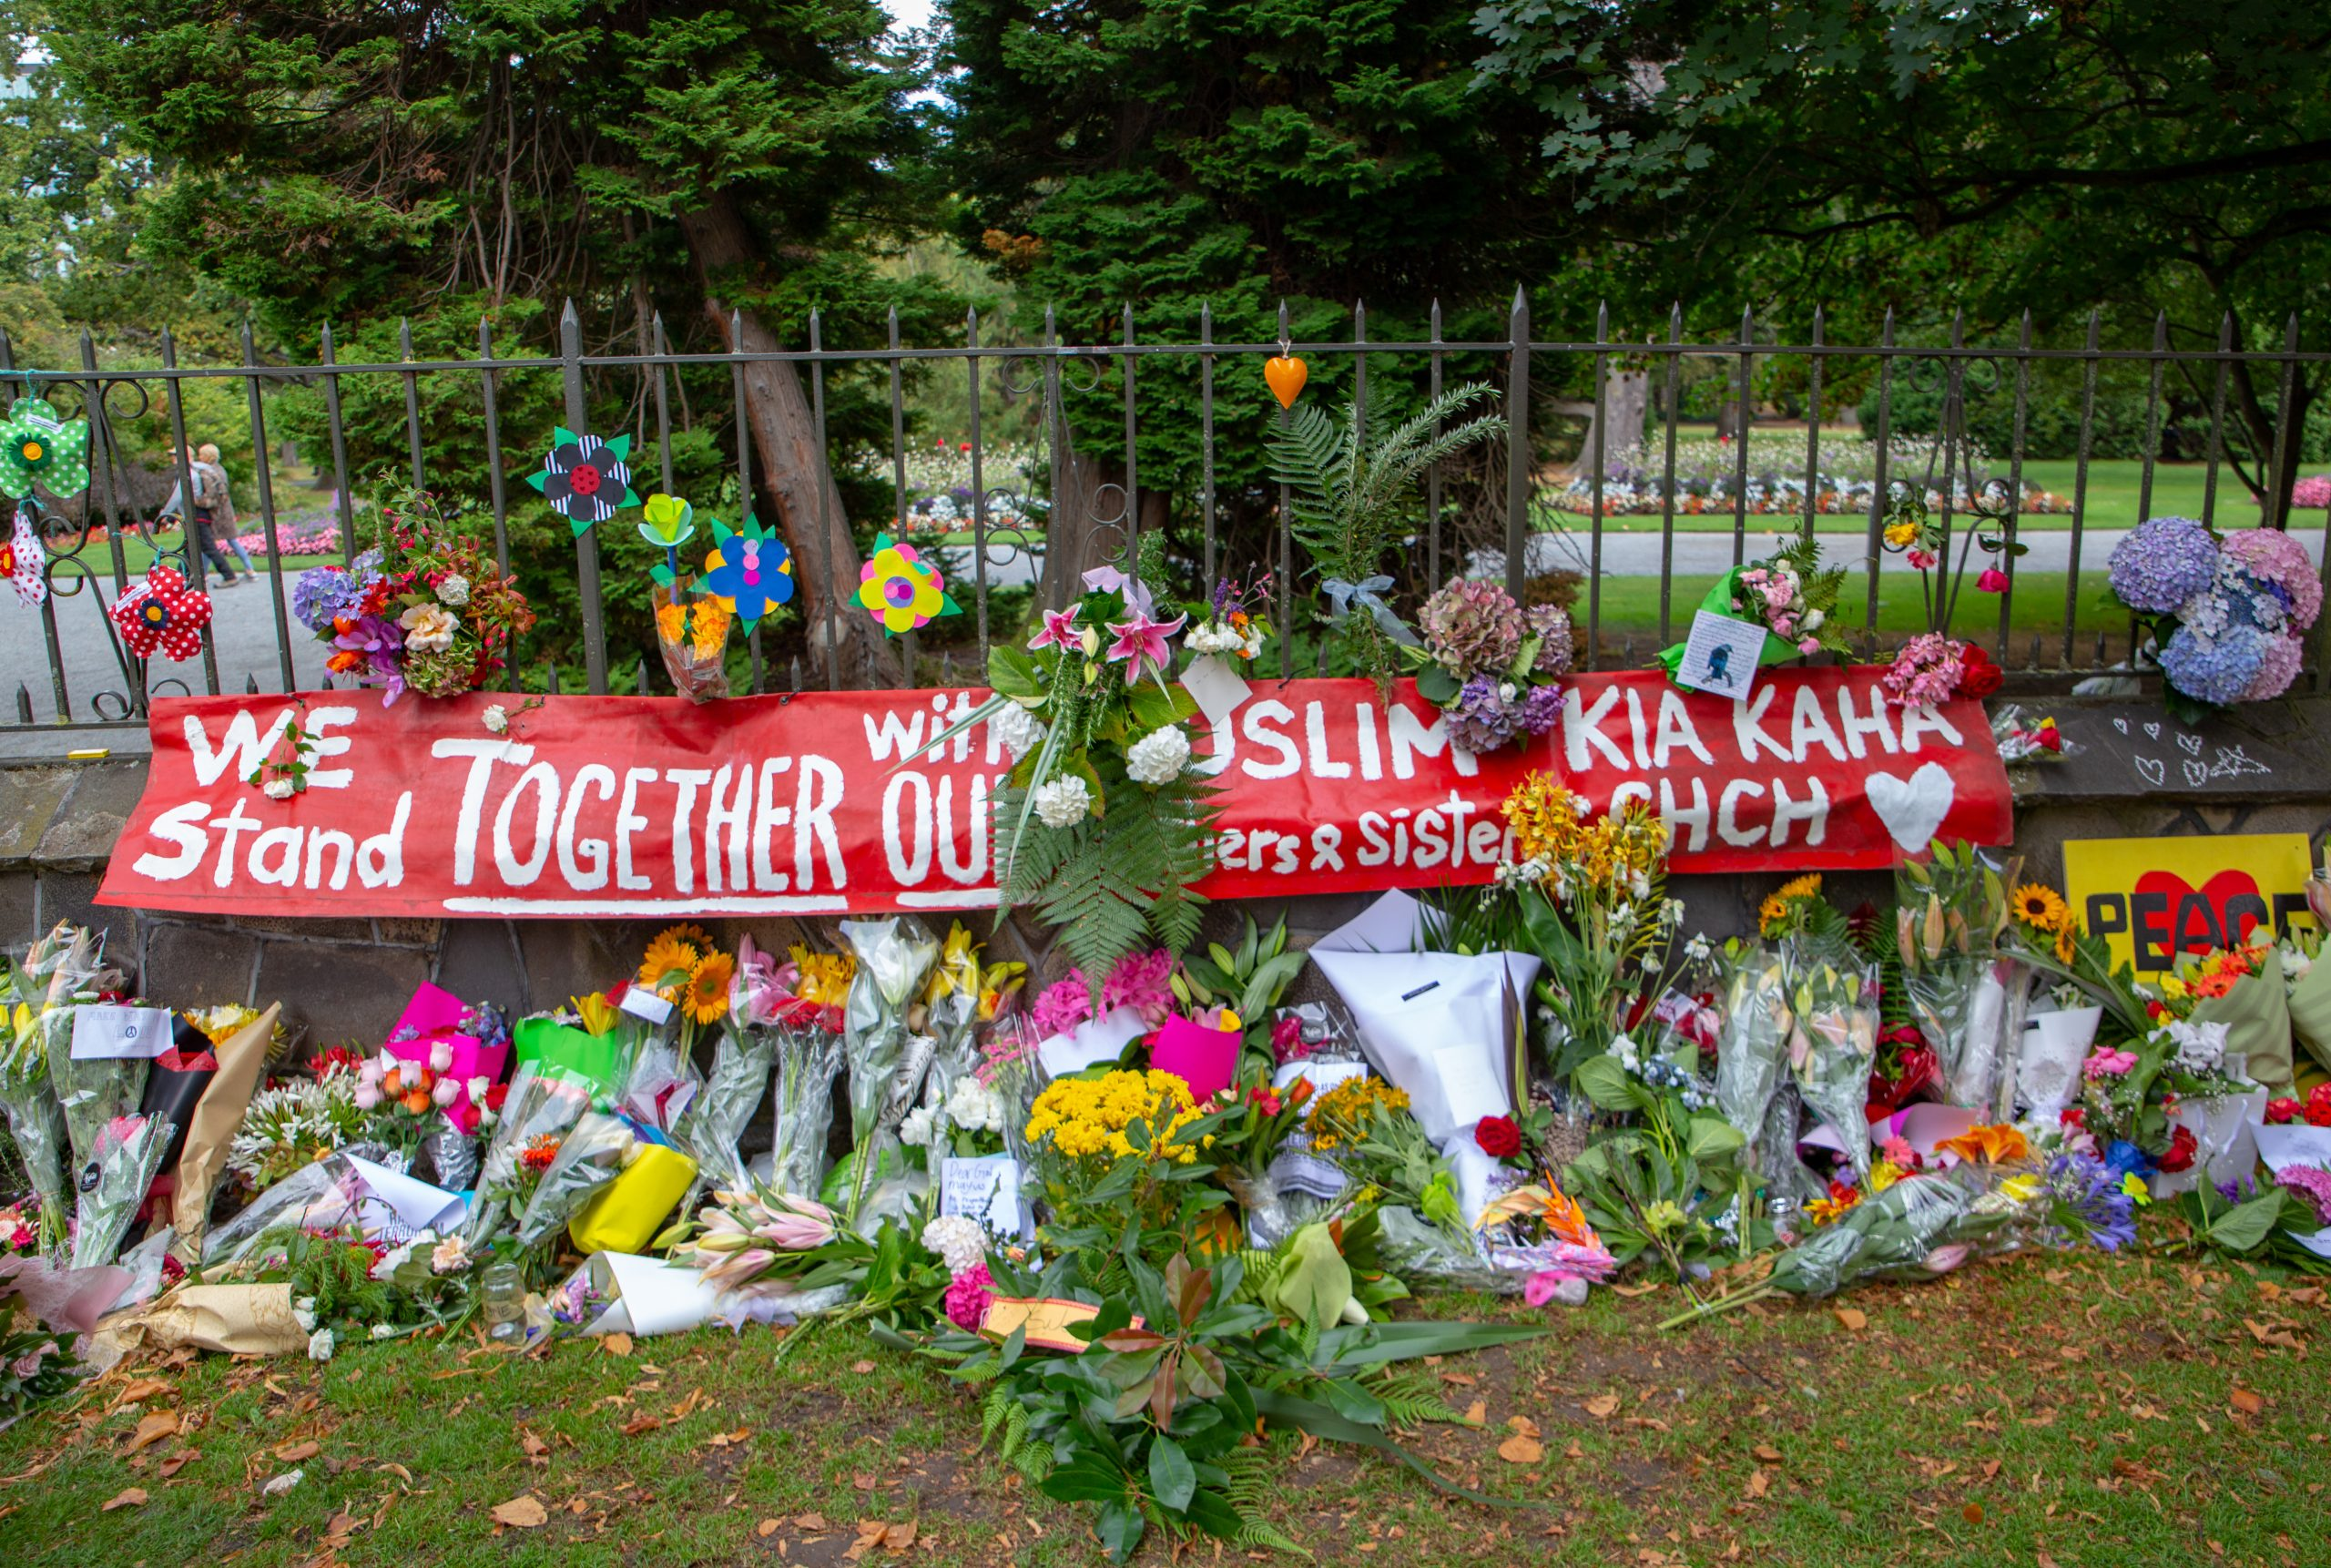 New Zealand marks two years since Christchurch mosque killings